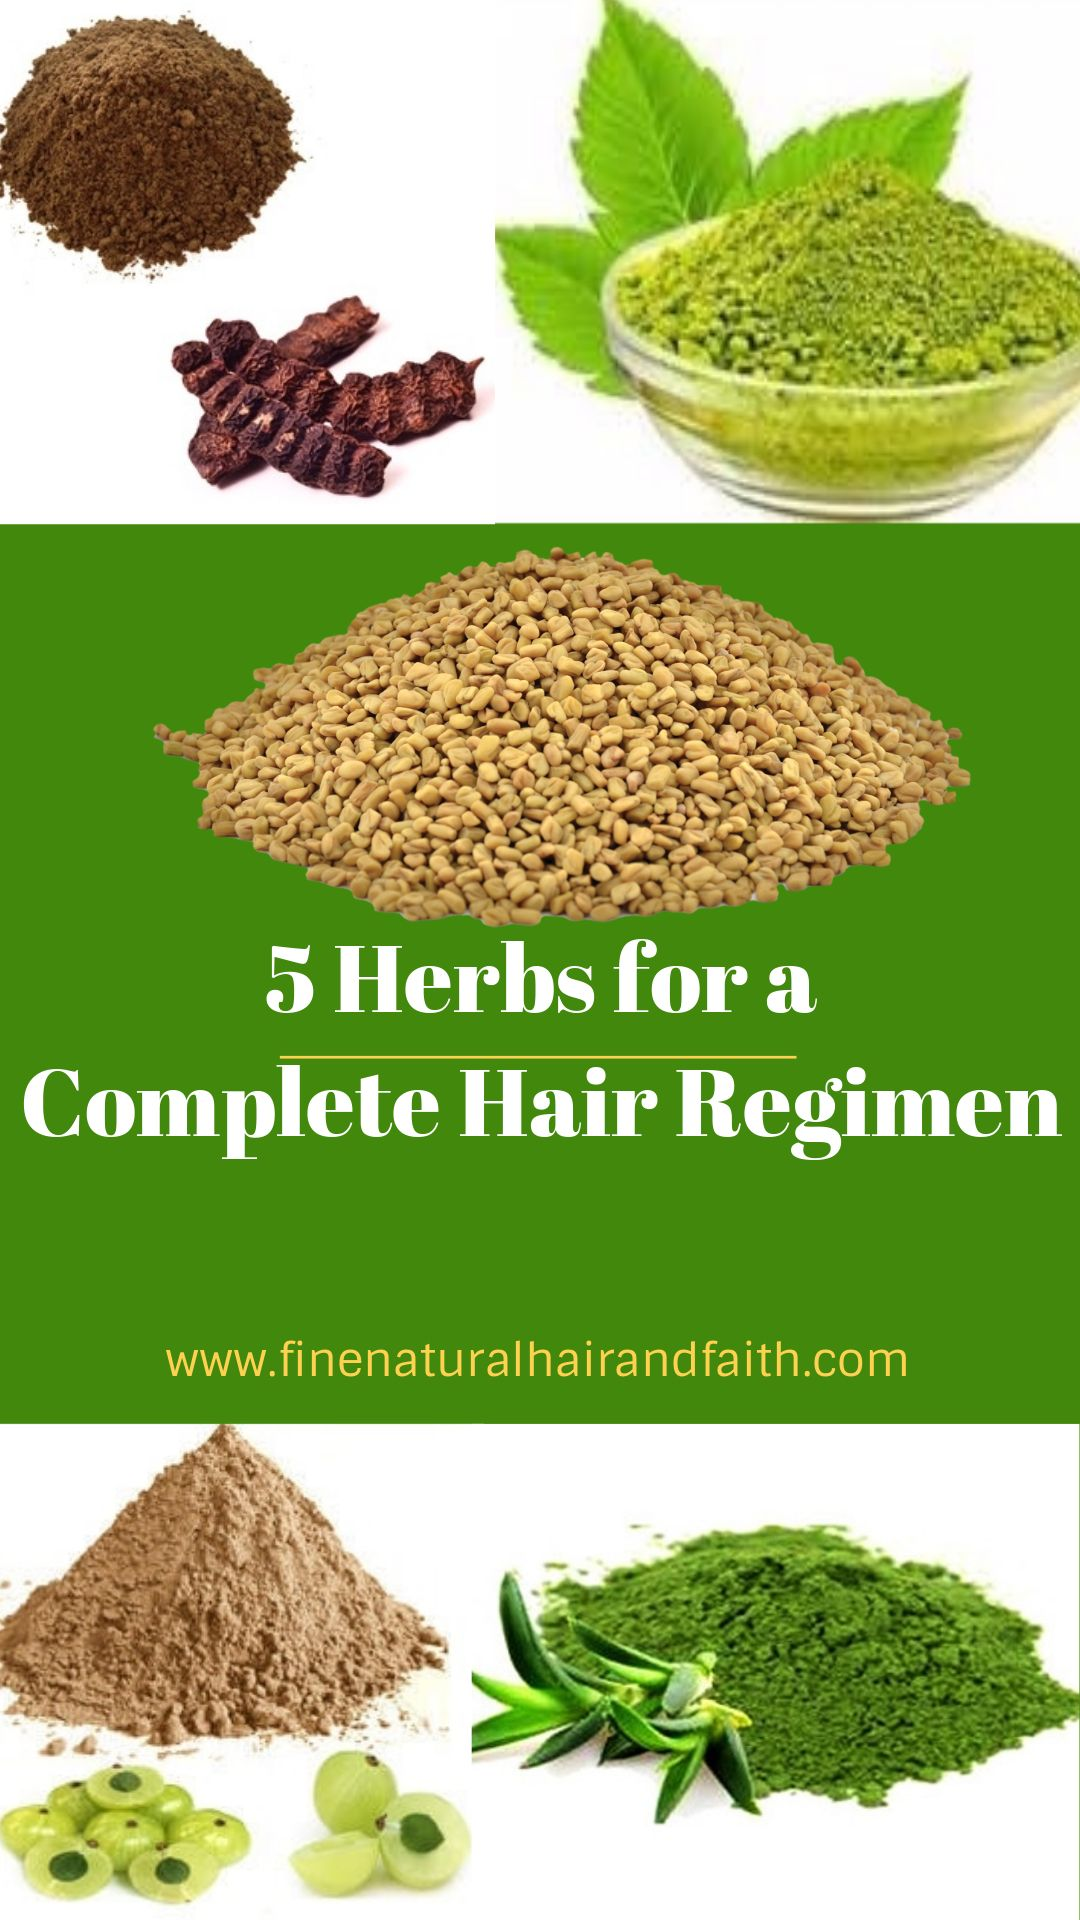 HERBS FOR HAIR CARE: Top 5 Herbs for a Complete Regimen | FINE NATURAL HAIR & FAITH: Growth, Styling, Herbal Hair Care #naturalhaircareproducts